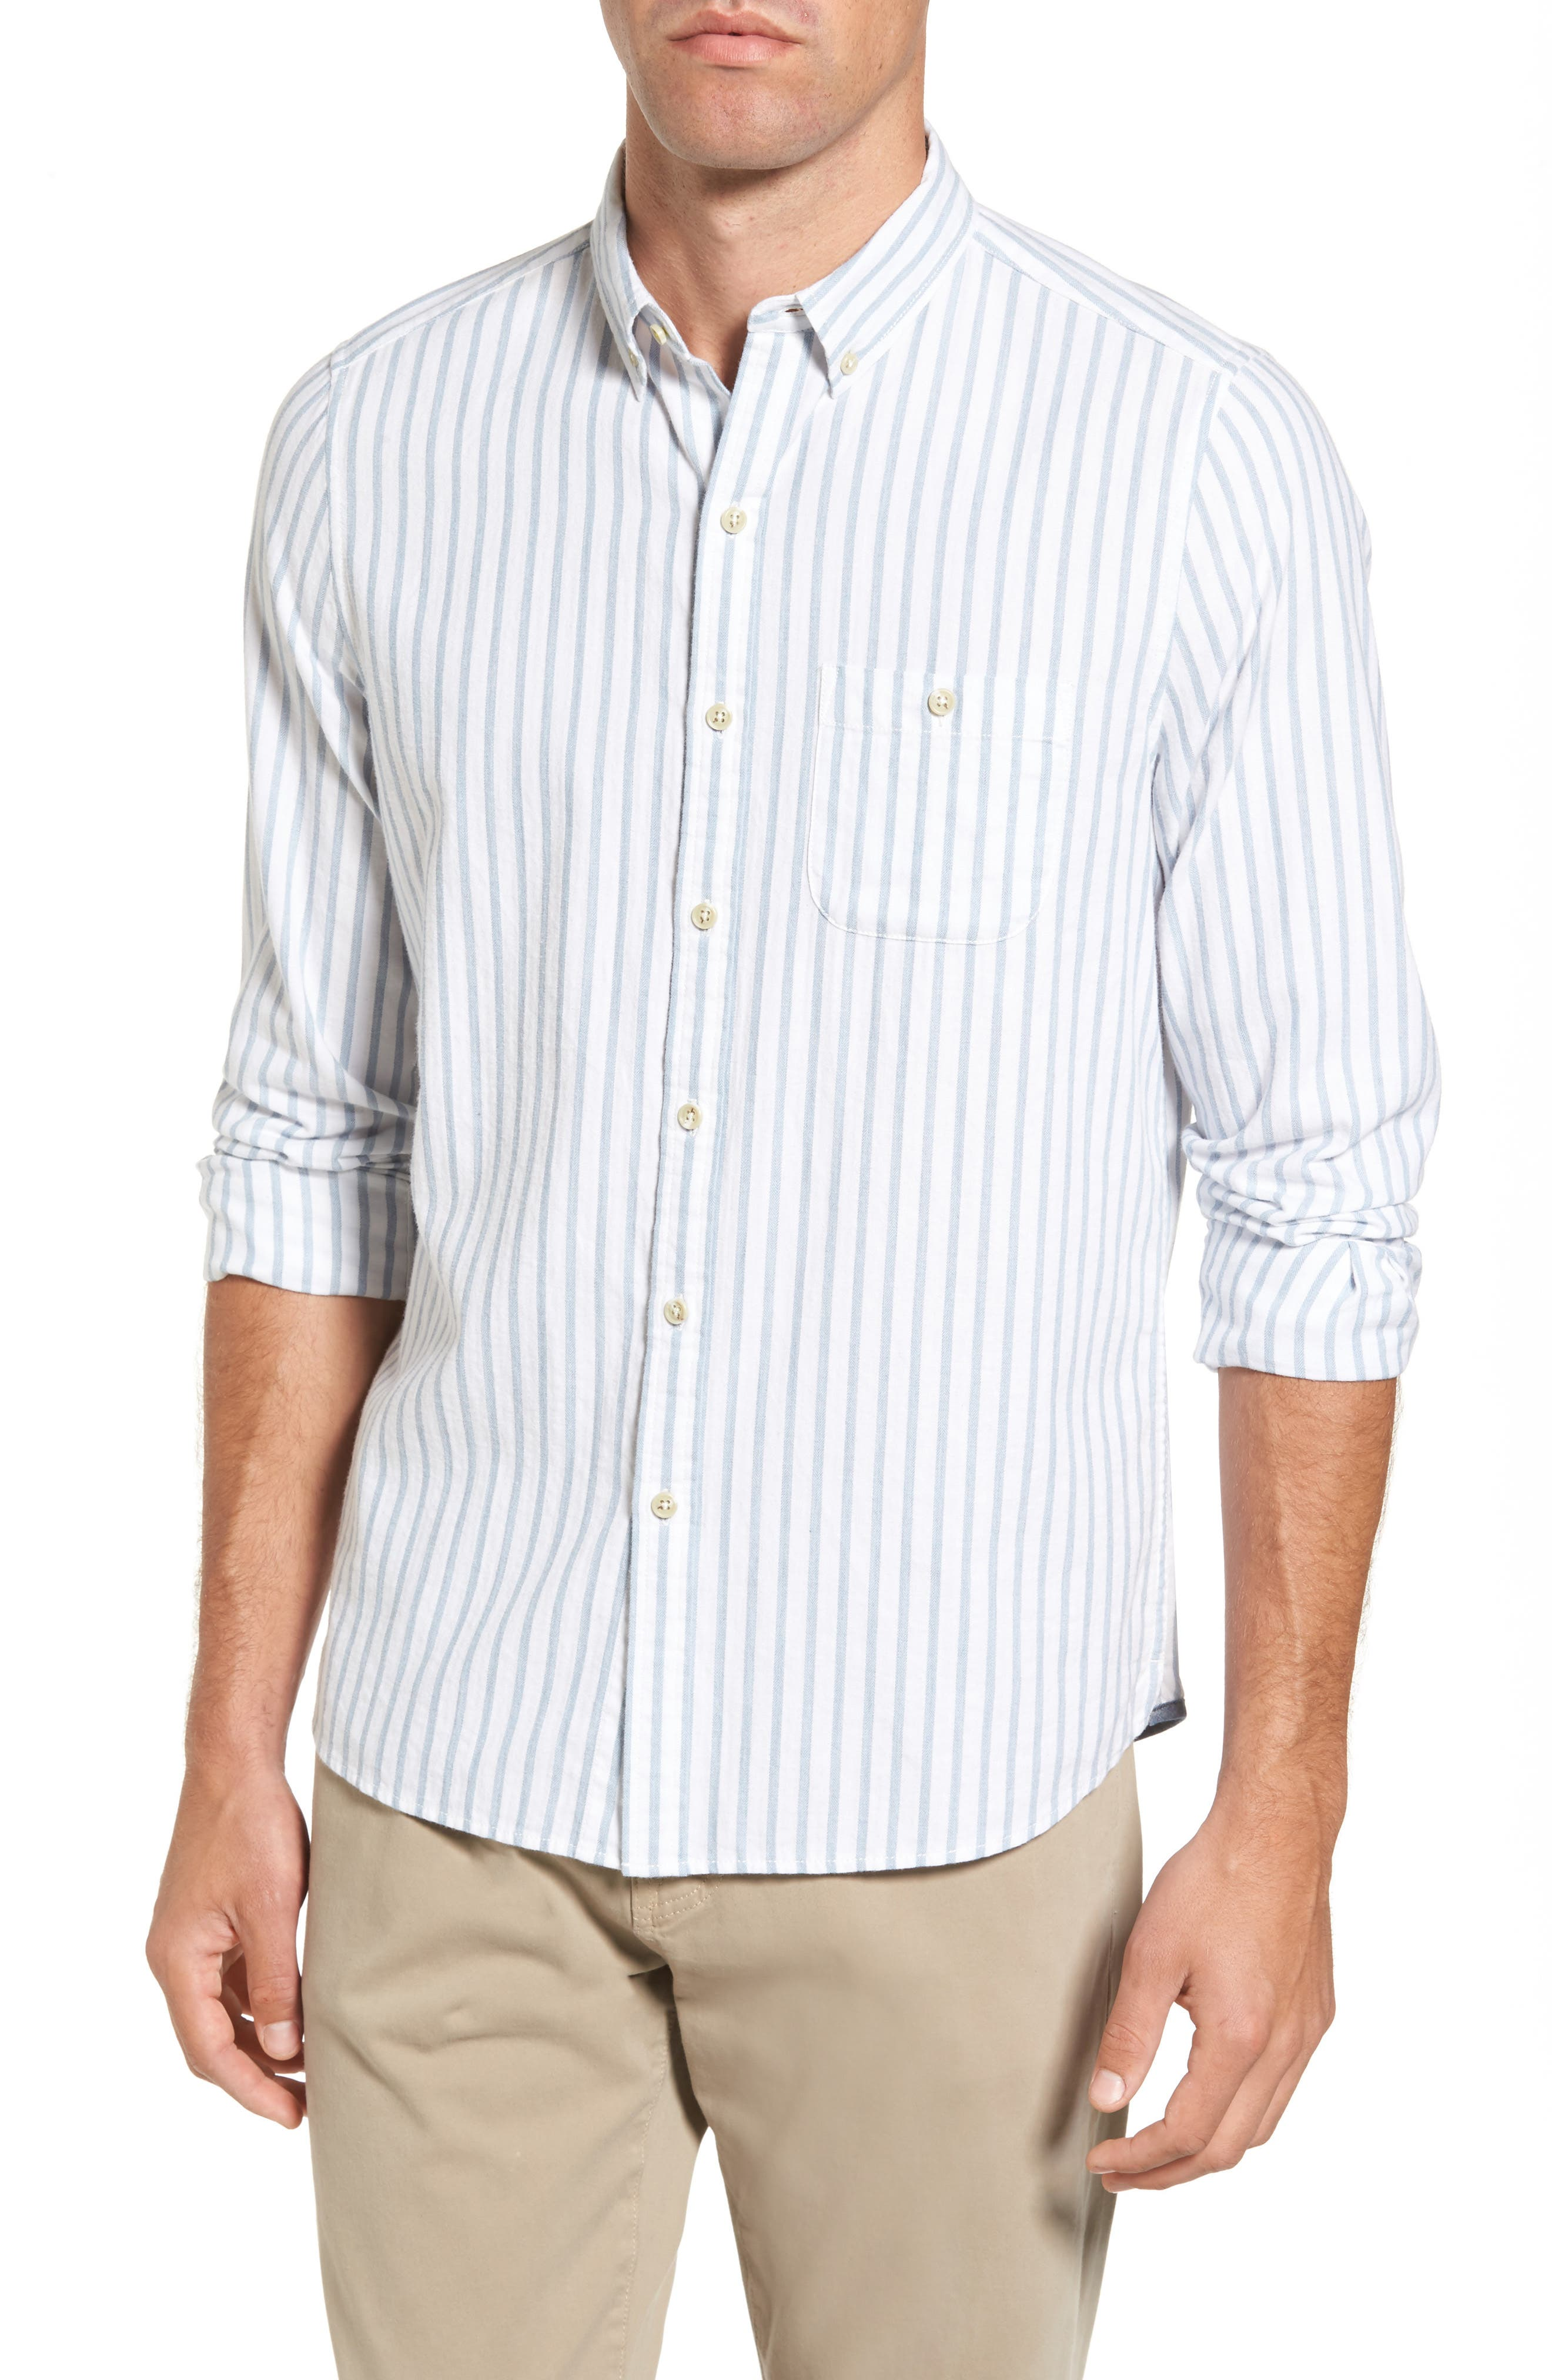 Alternate Image 1 Selected - Michael Bastian Trim Fit Vertical Stripe Sport Shirt